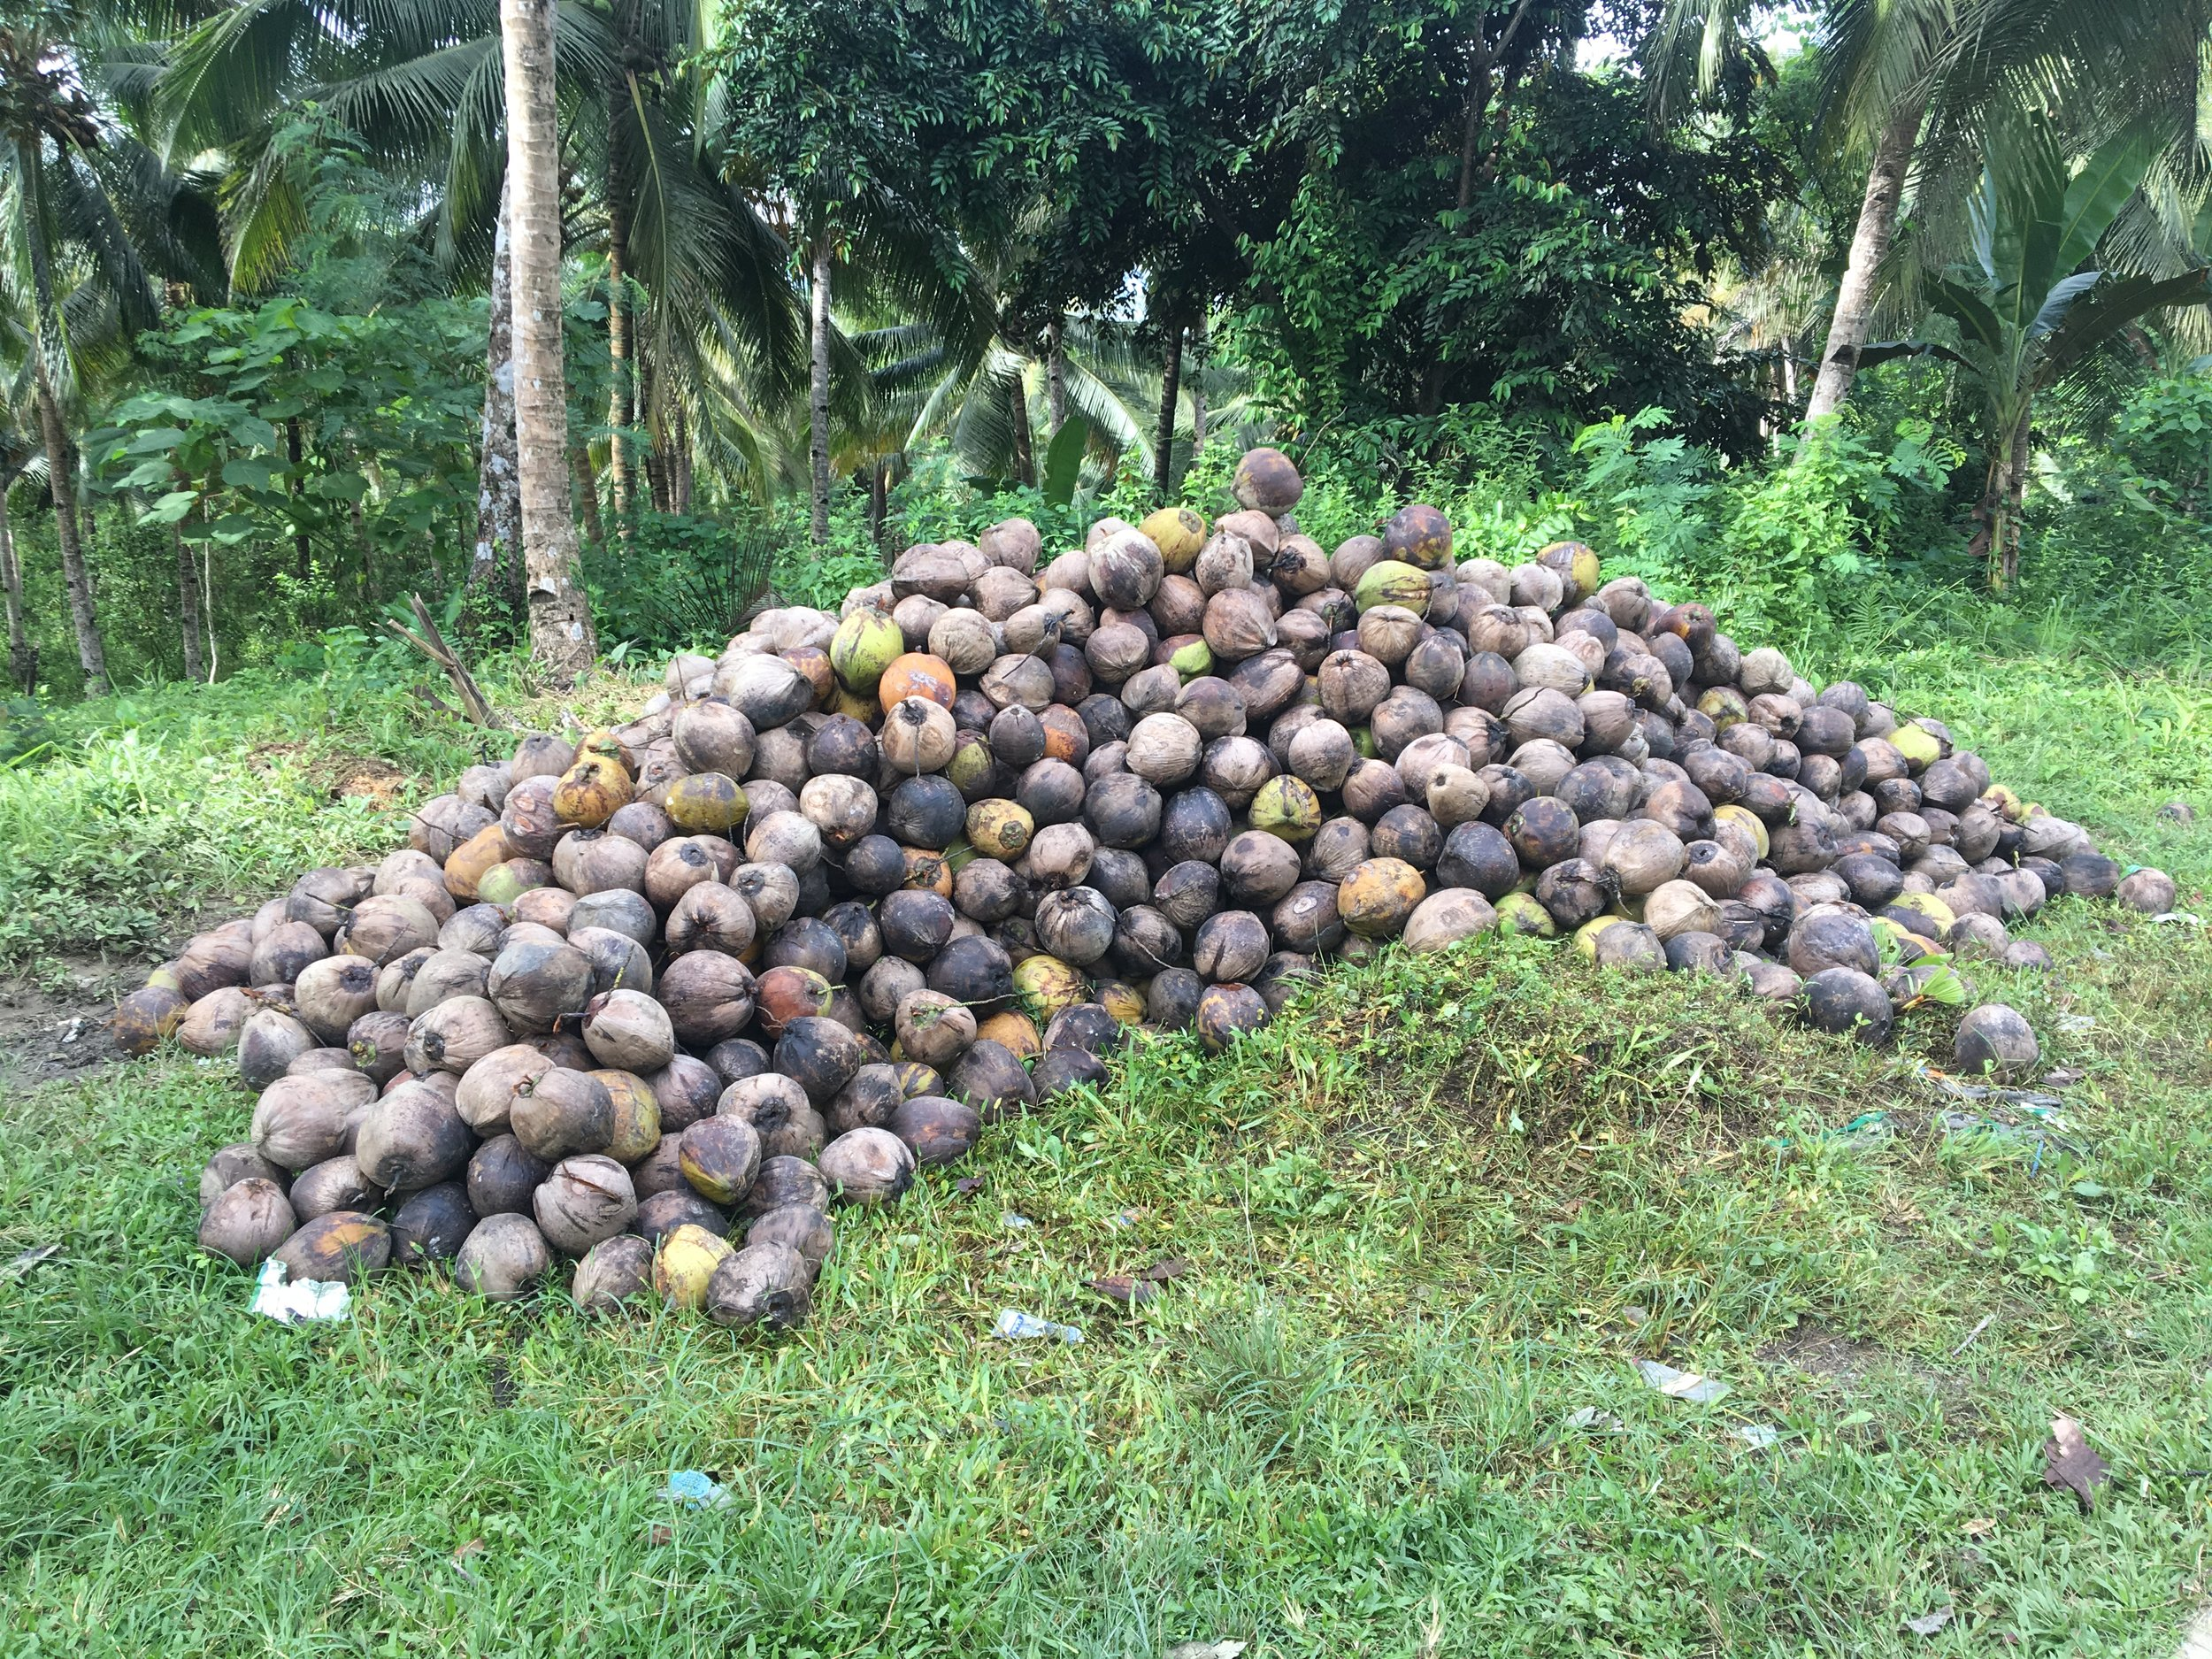 Whole coconuts ready to be delivered to CocoAsenso directly from the farmer.